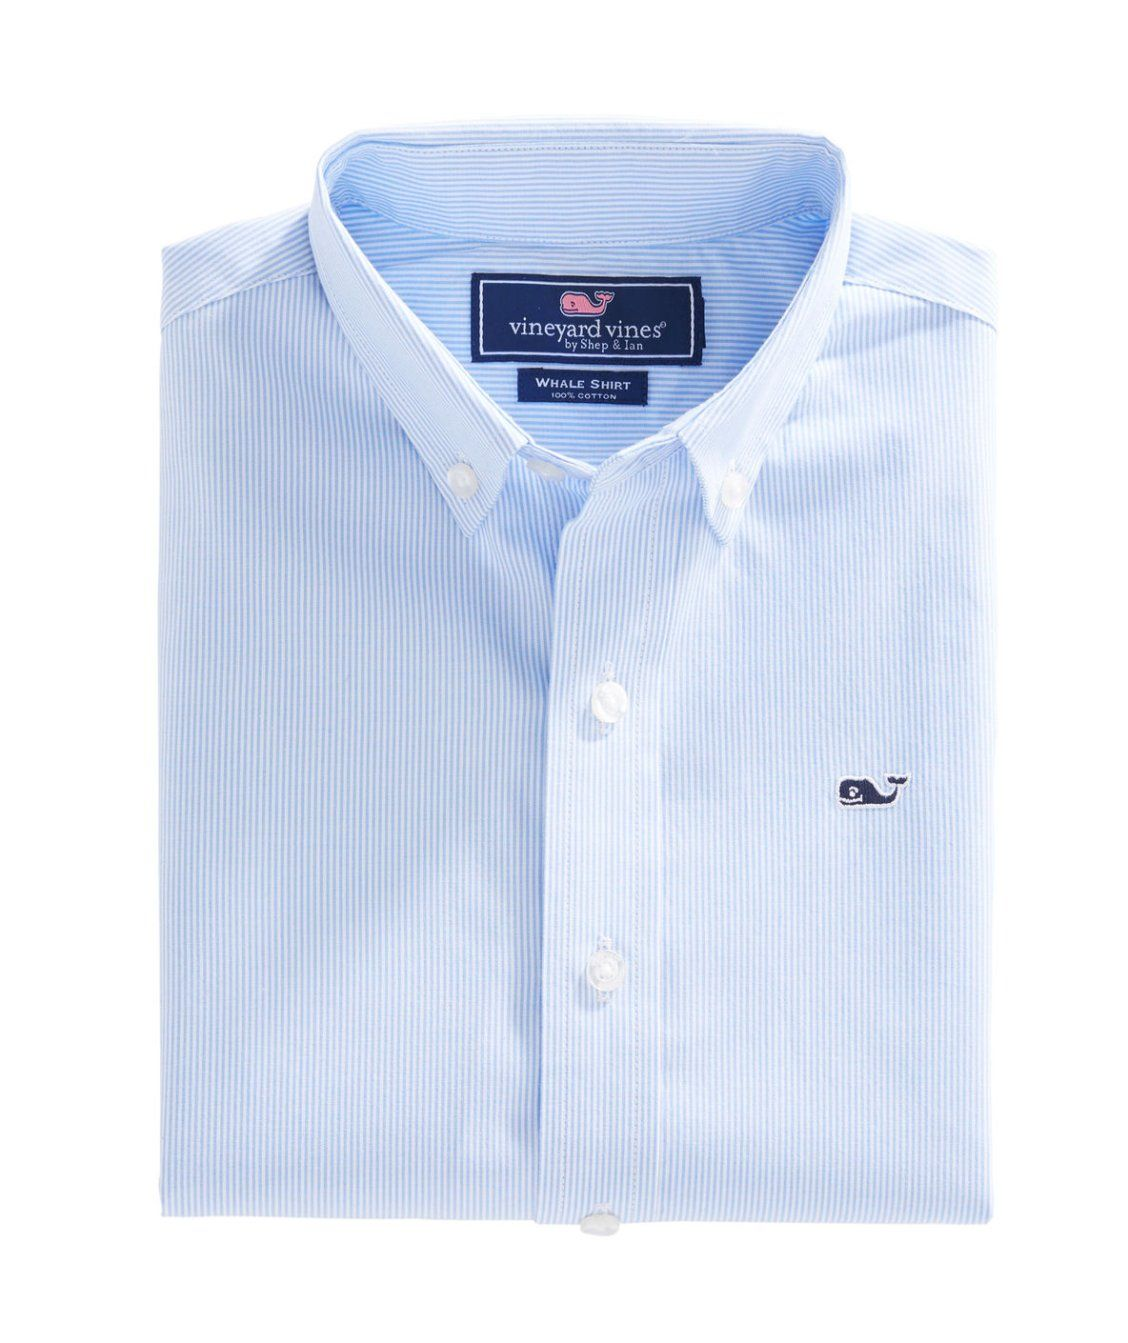 Boys Fine Line Stripe Whale Shirt in 2019.